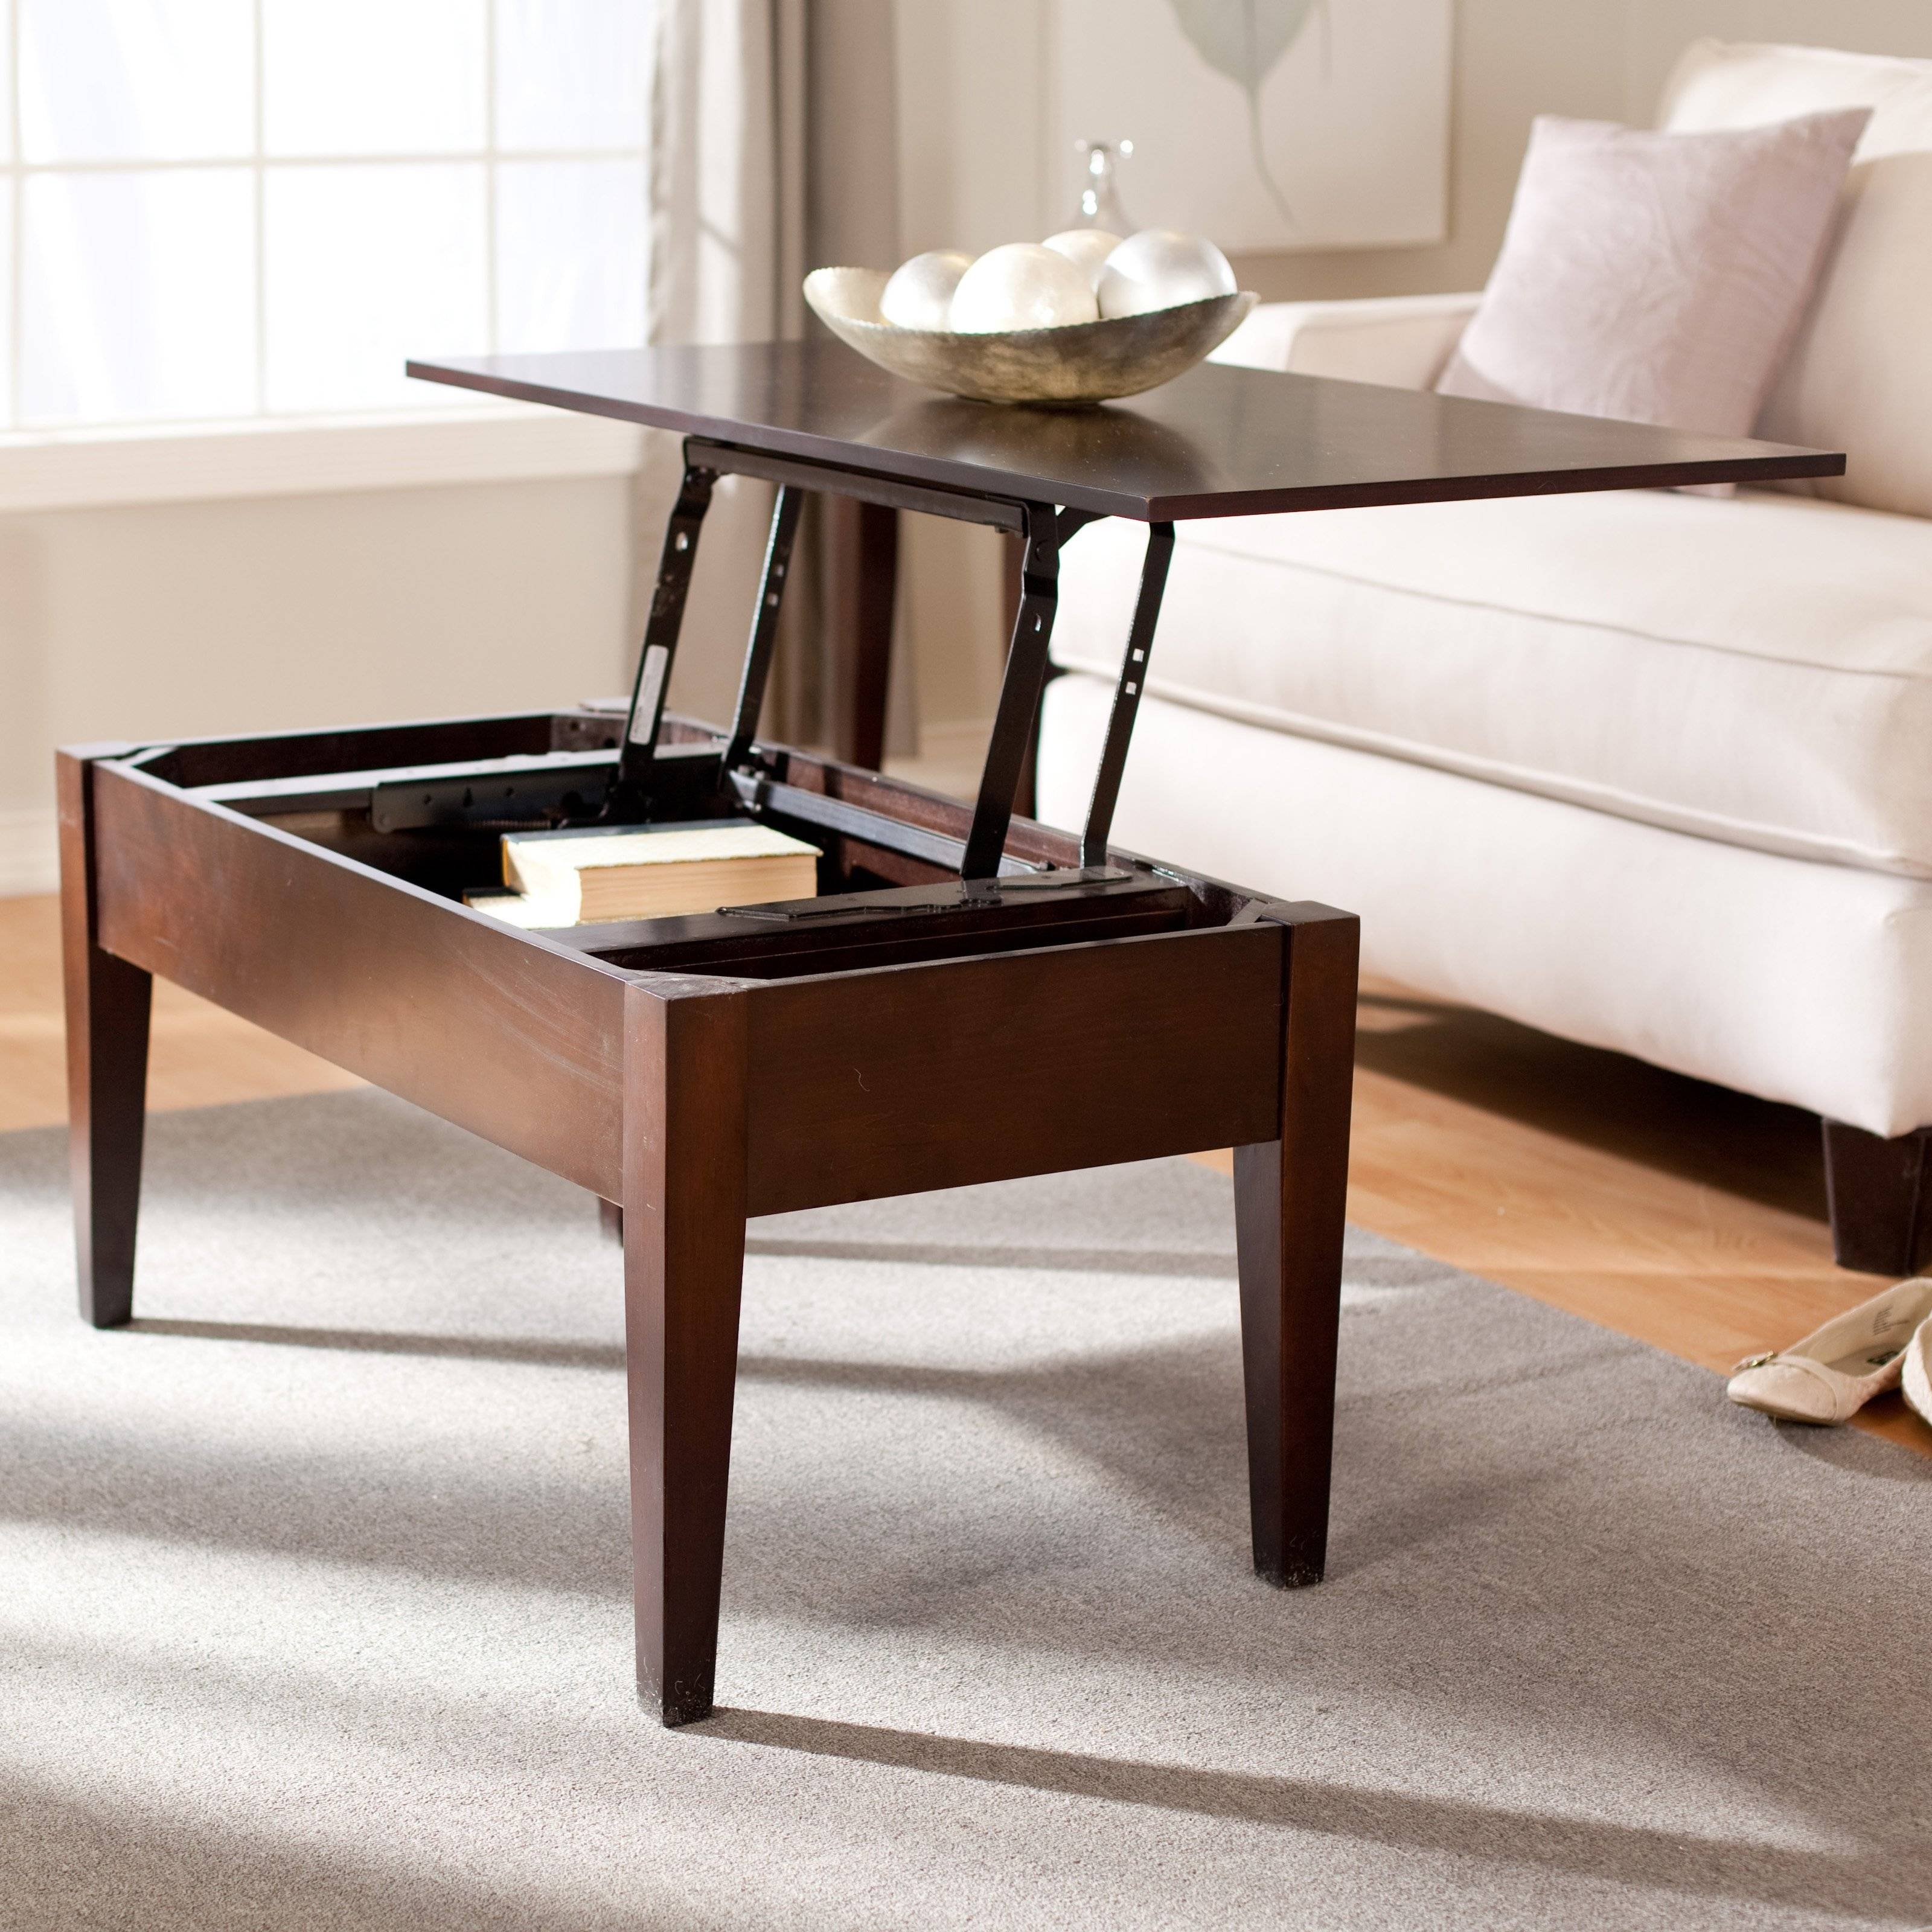 Turner Lift Top Coffee Table - Espresso | Hayneedle for Lift Coffee Tables (Image 24 of 30)